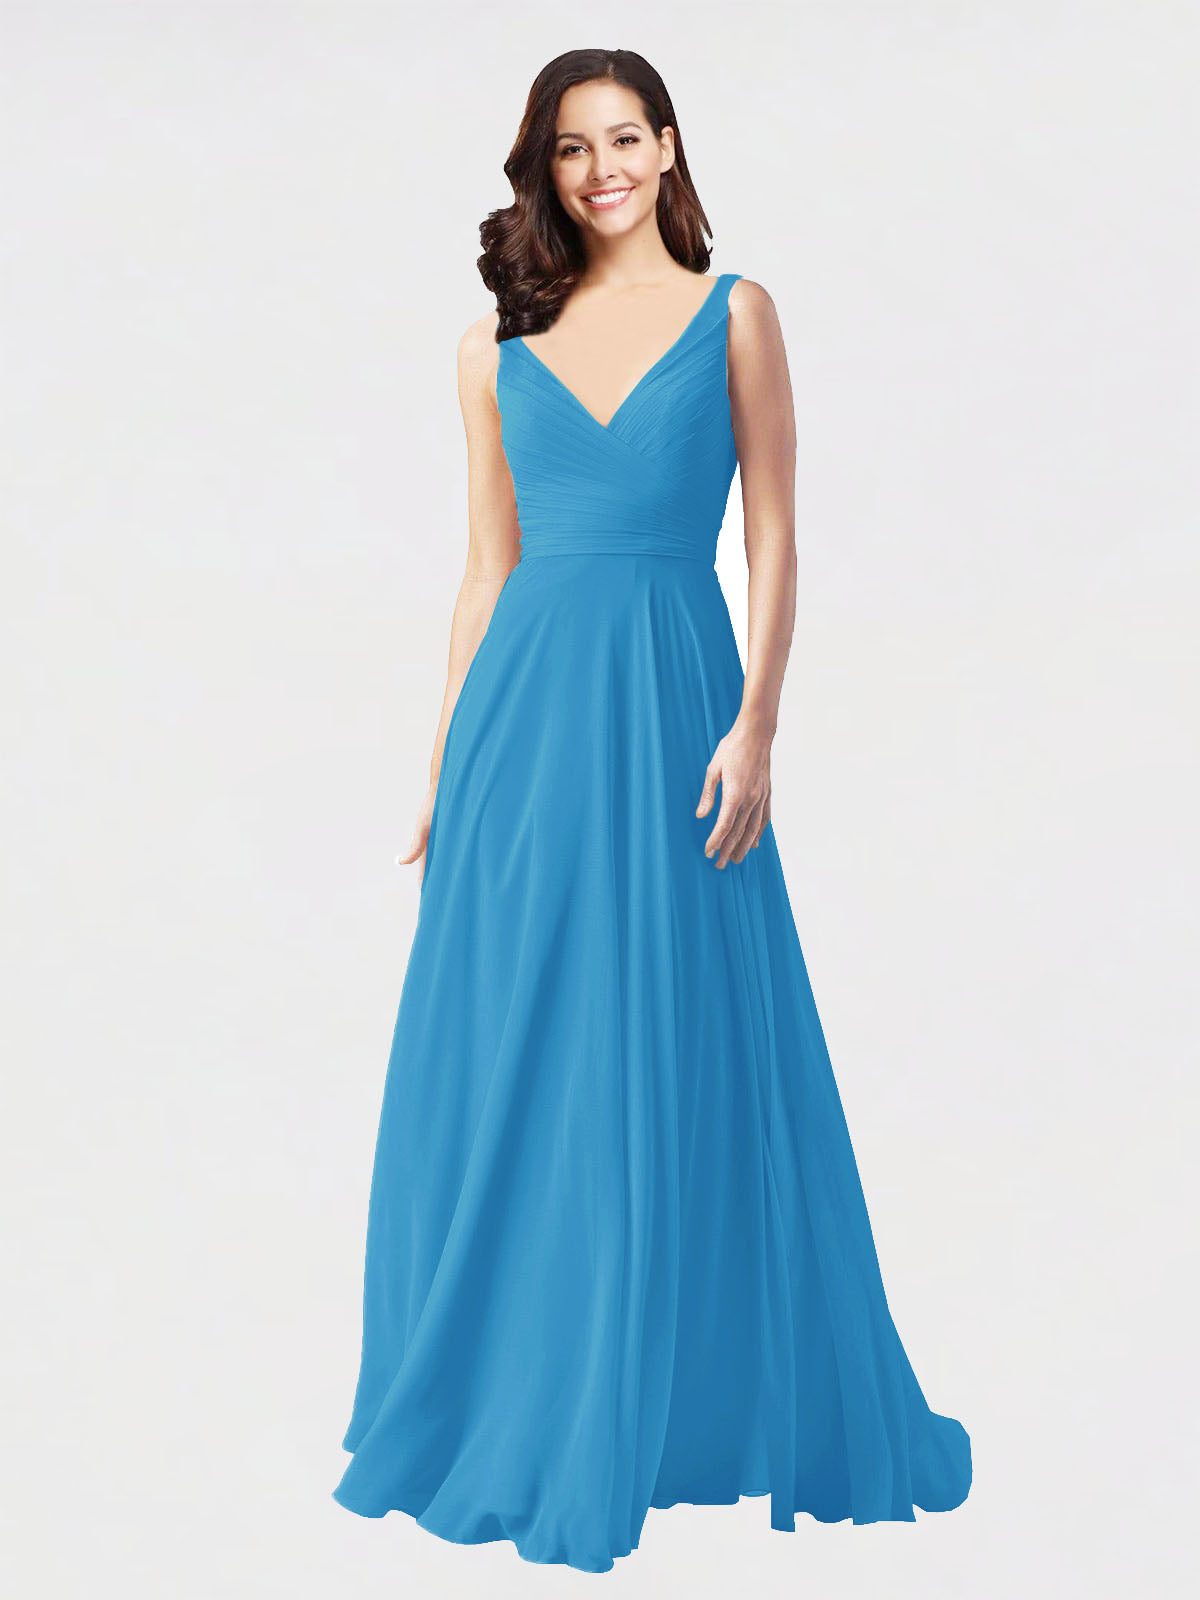 Long A-Line V-Neck Sleeveless Peacock Blue Chiffon Bridesmaid Dress Bernice